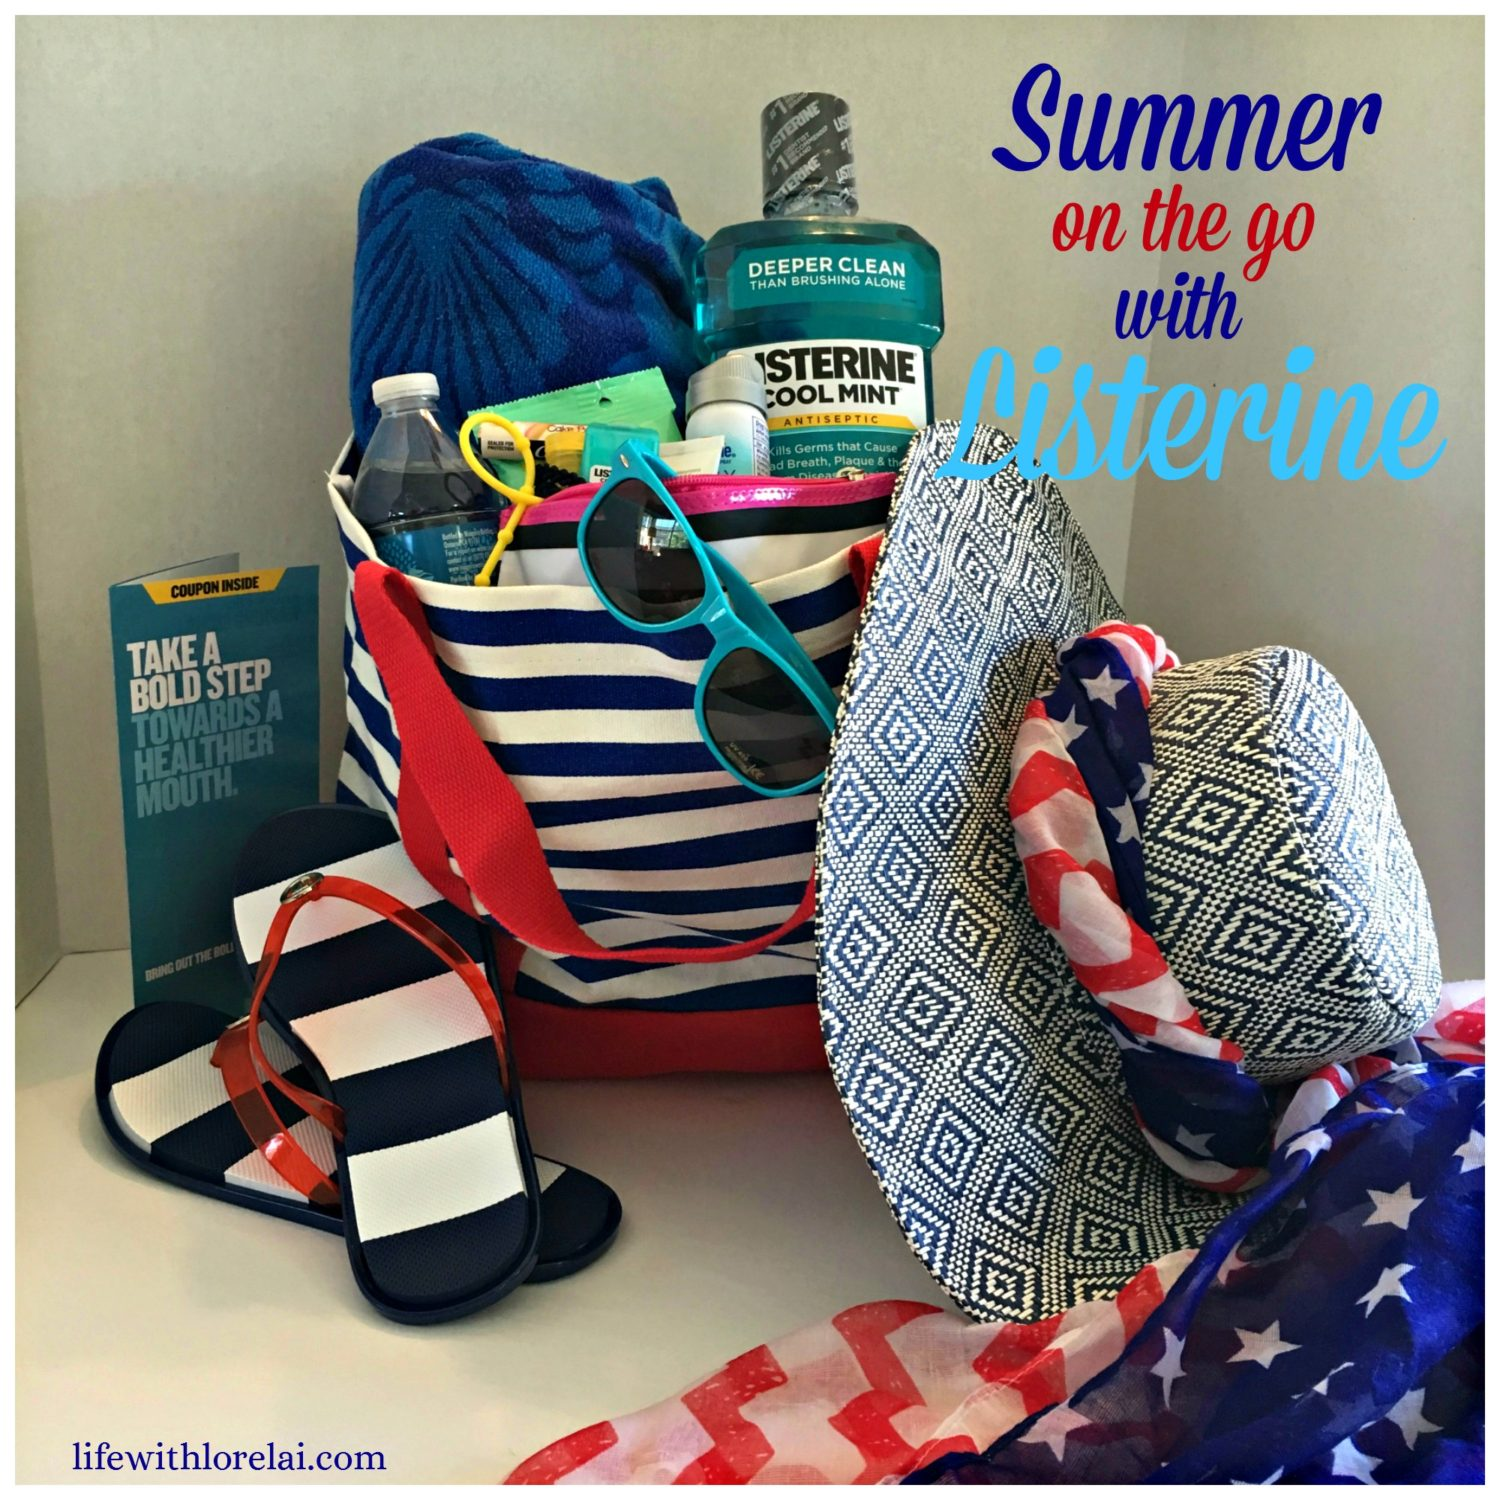 Summer-on-the-go-Listerine-Summer-Survival-Kit